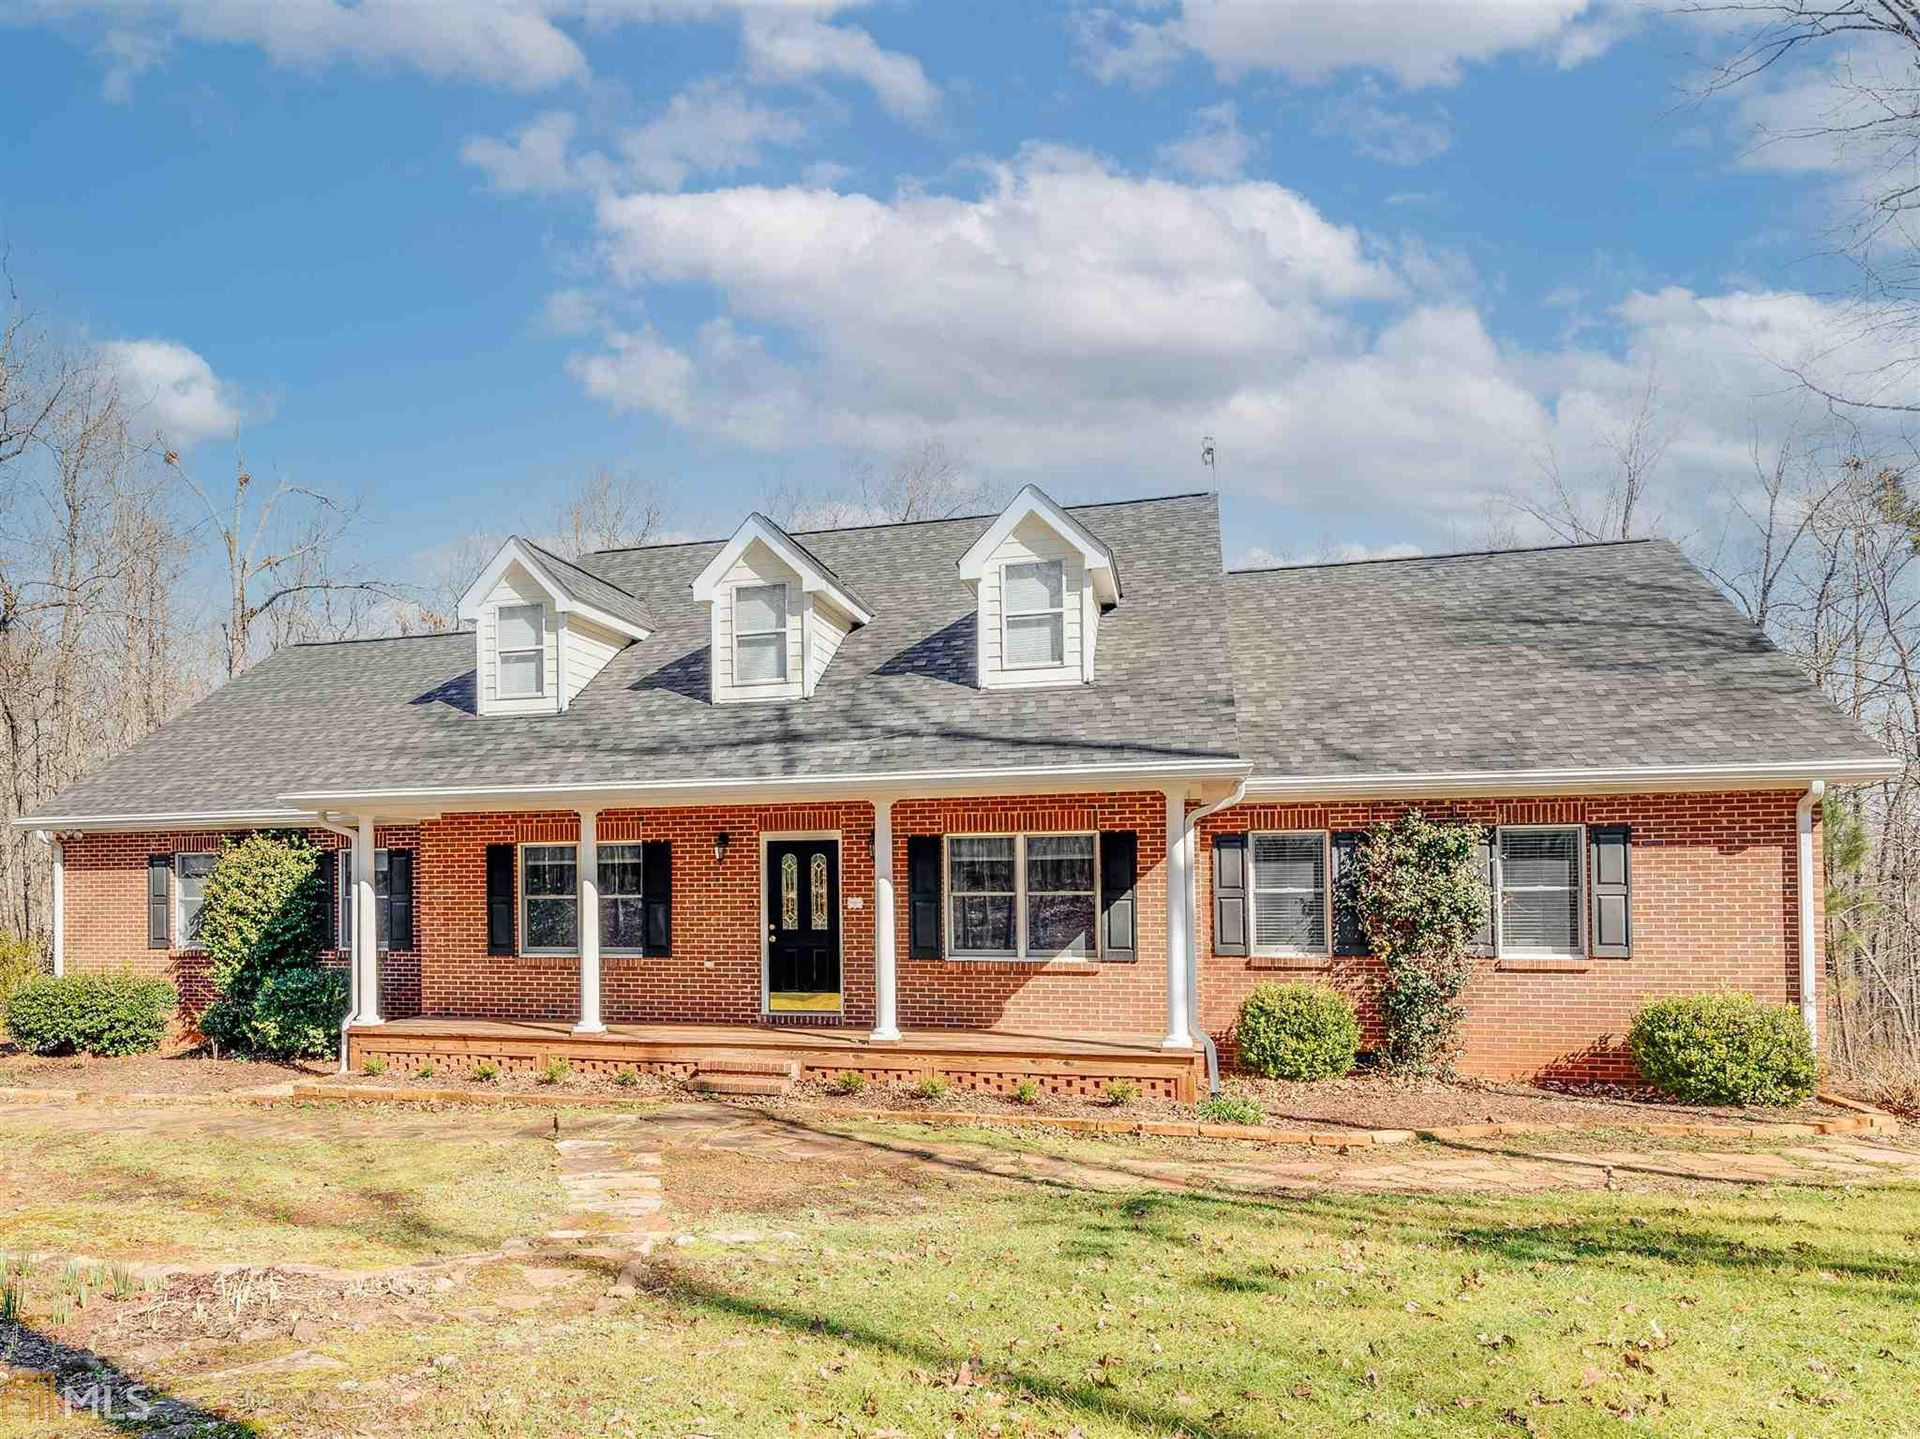 335 Chestnut Hill Rd, Griffin, GA 30224 - MLS#: 8930713